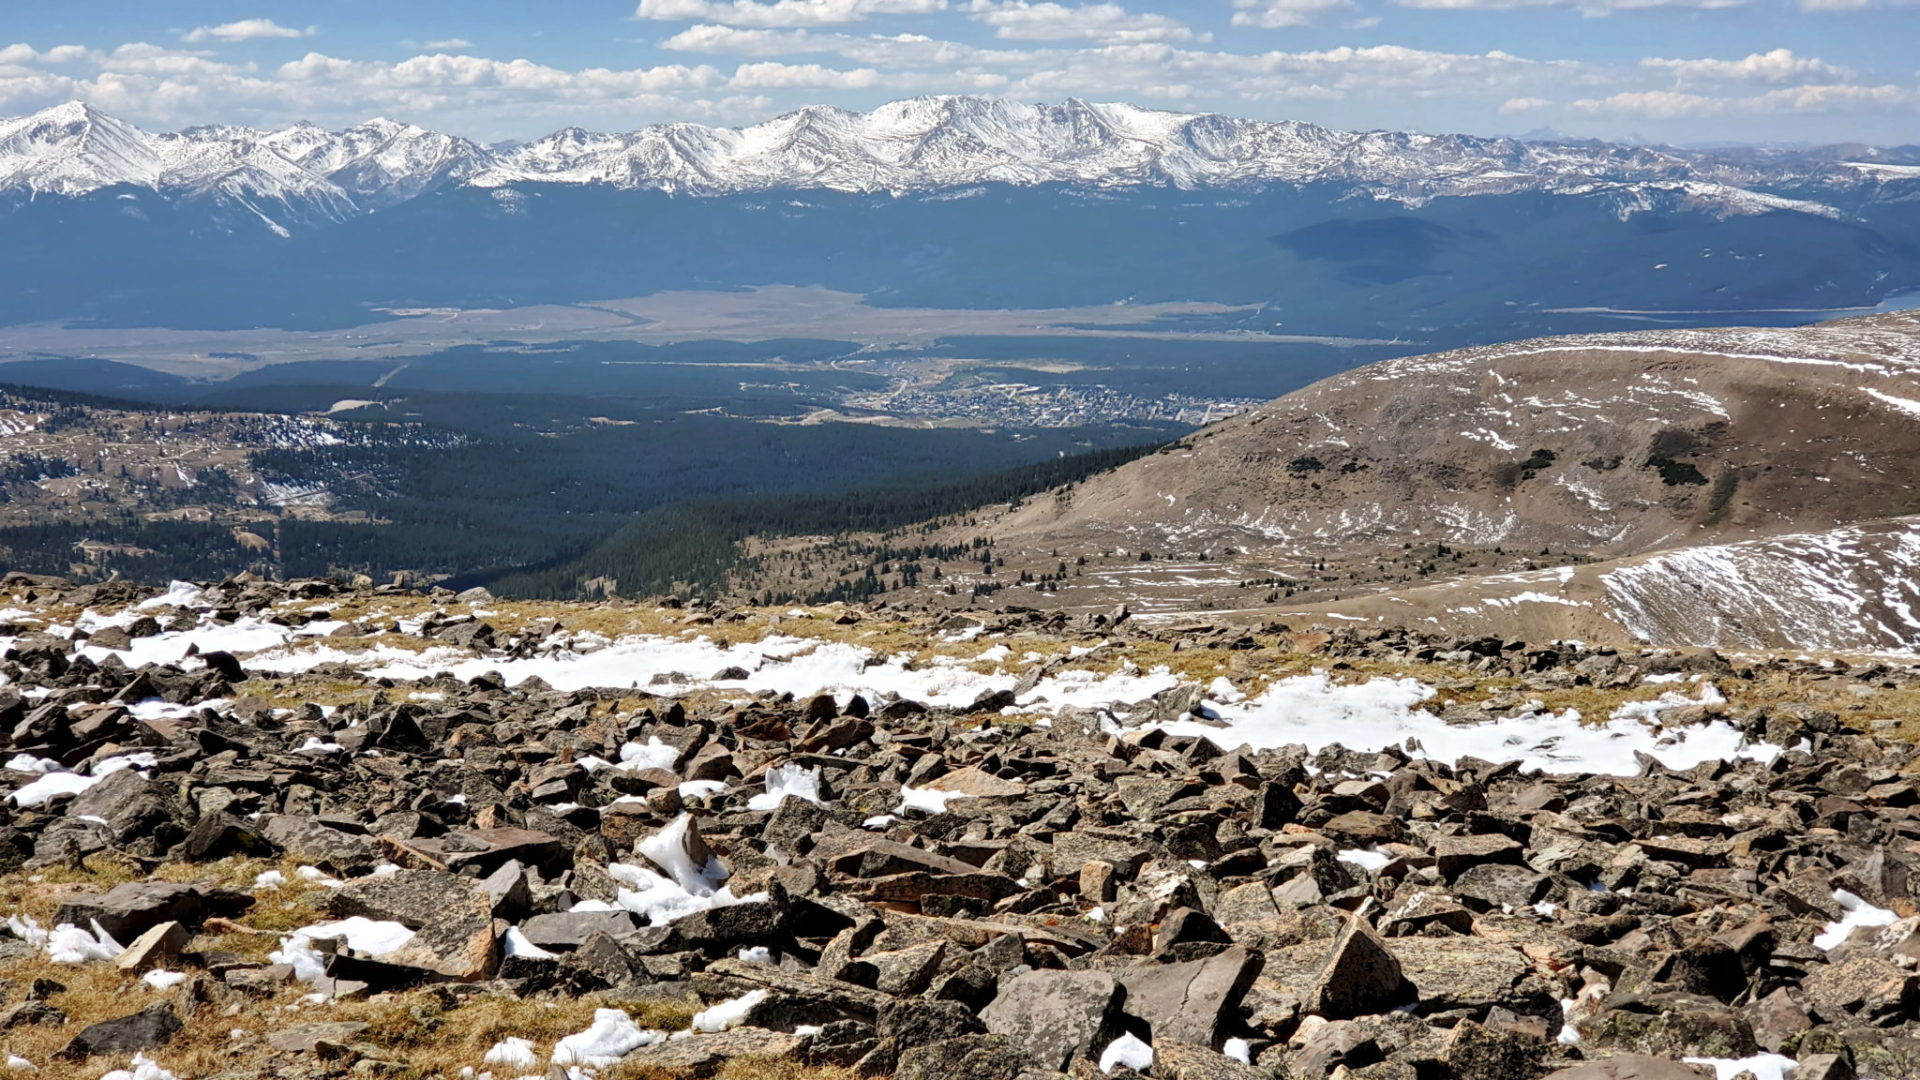 Leadville in the valley below